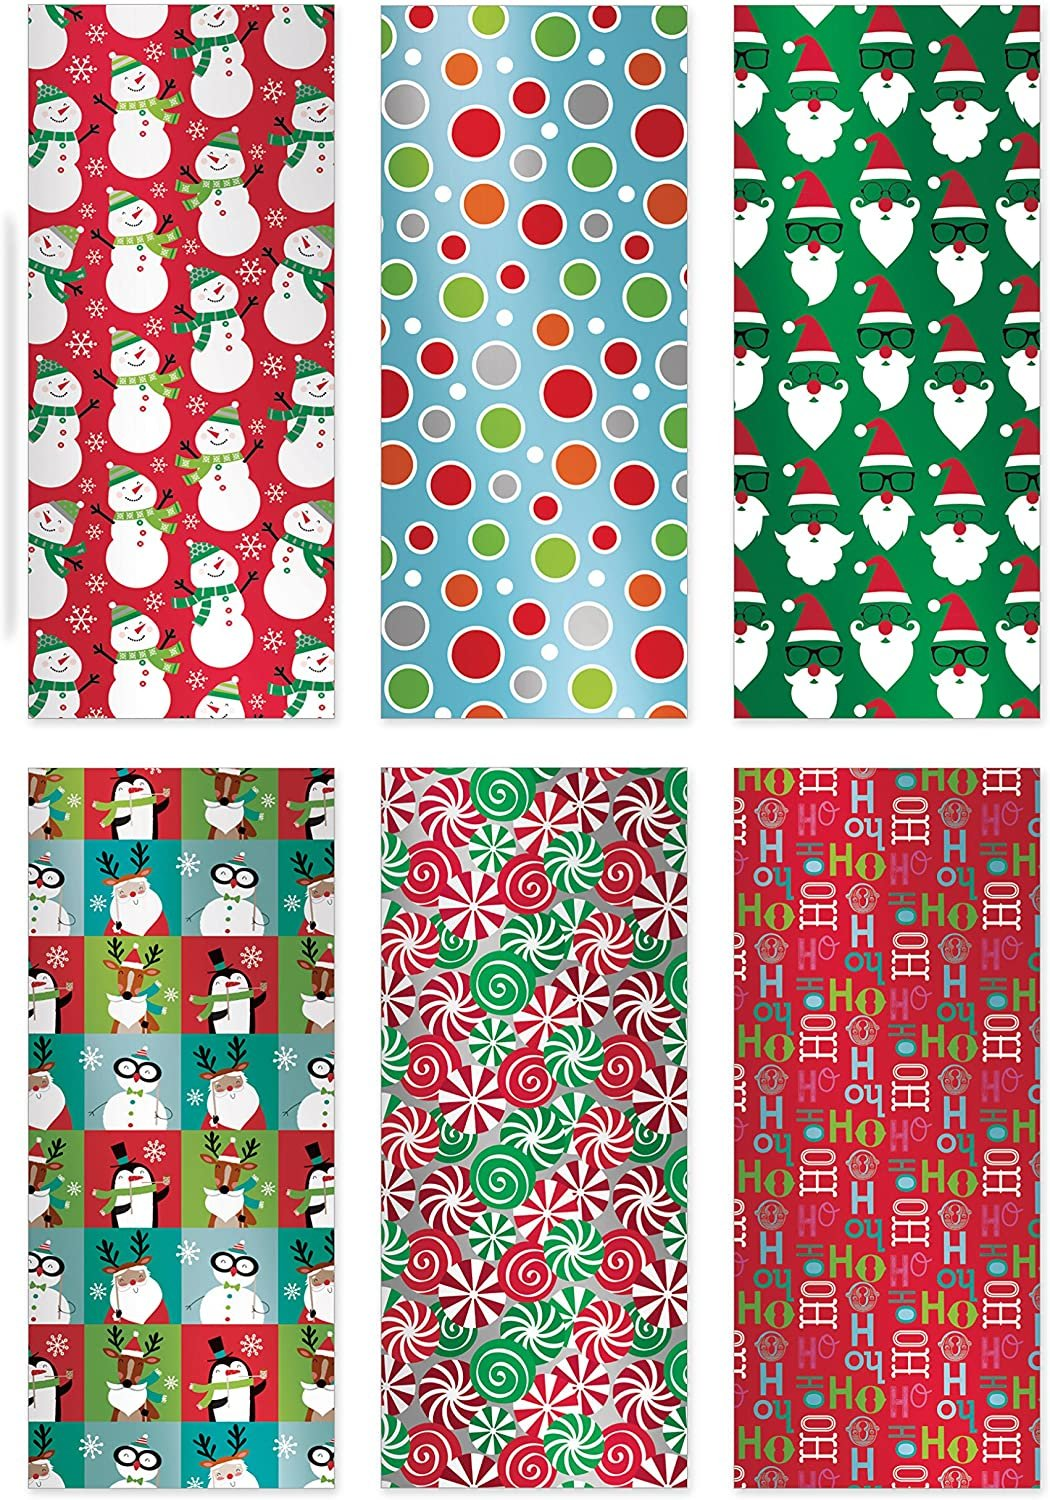 Christmas Gift Wrapping Paper Multi Pack of 6 Rolls of Gifting Wrap Xmas Gifts; Includes a Total of 180 sq. ft. of Wrap. *Foil Finishes* and Cheerful Designs to Draw Out The Holiday Spirit!